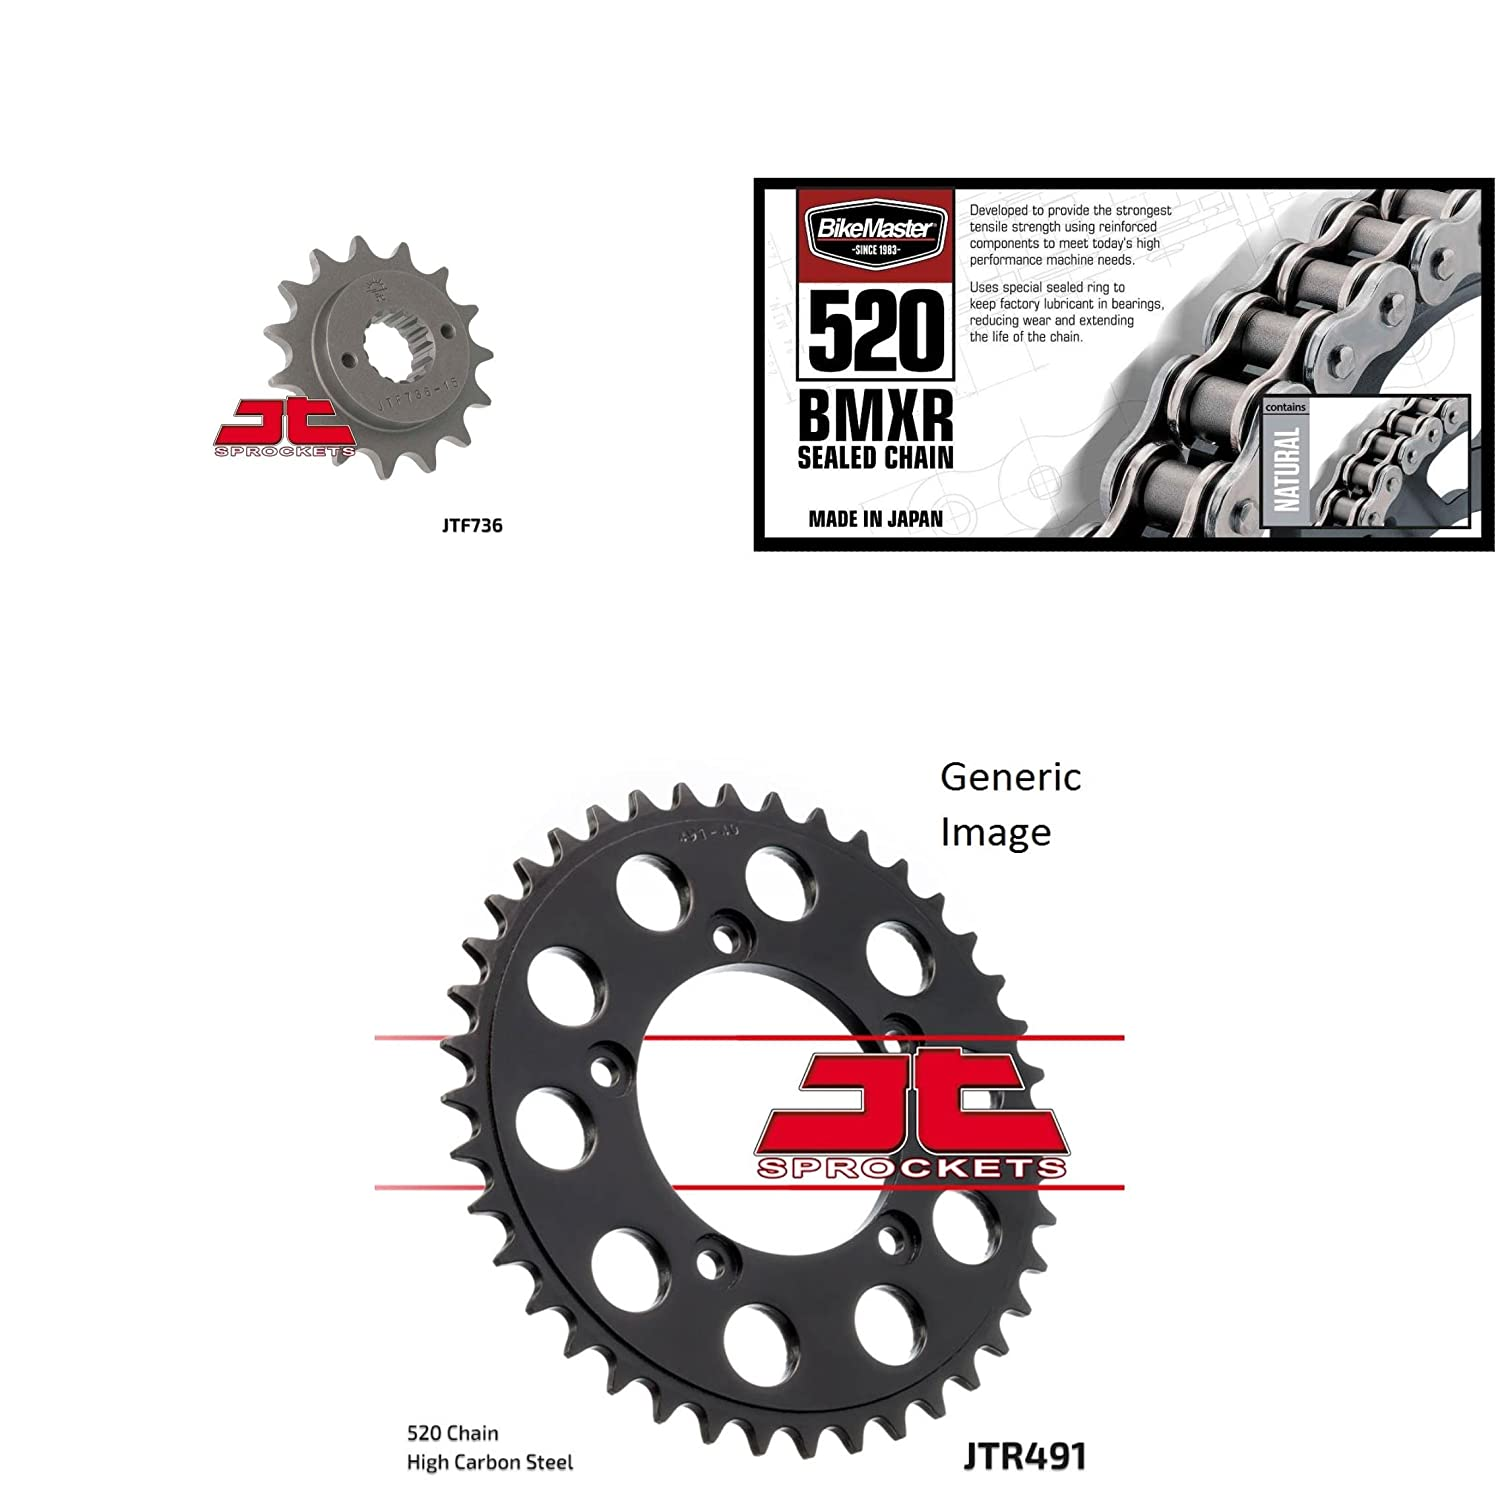 BIKEMASTER 520 BMXR Sealed Chain Natural, JT Front & Rear Sprocket Kit for Street DUCATI 906 Paso Sports 1990-1993